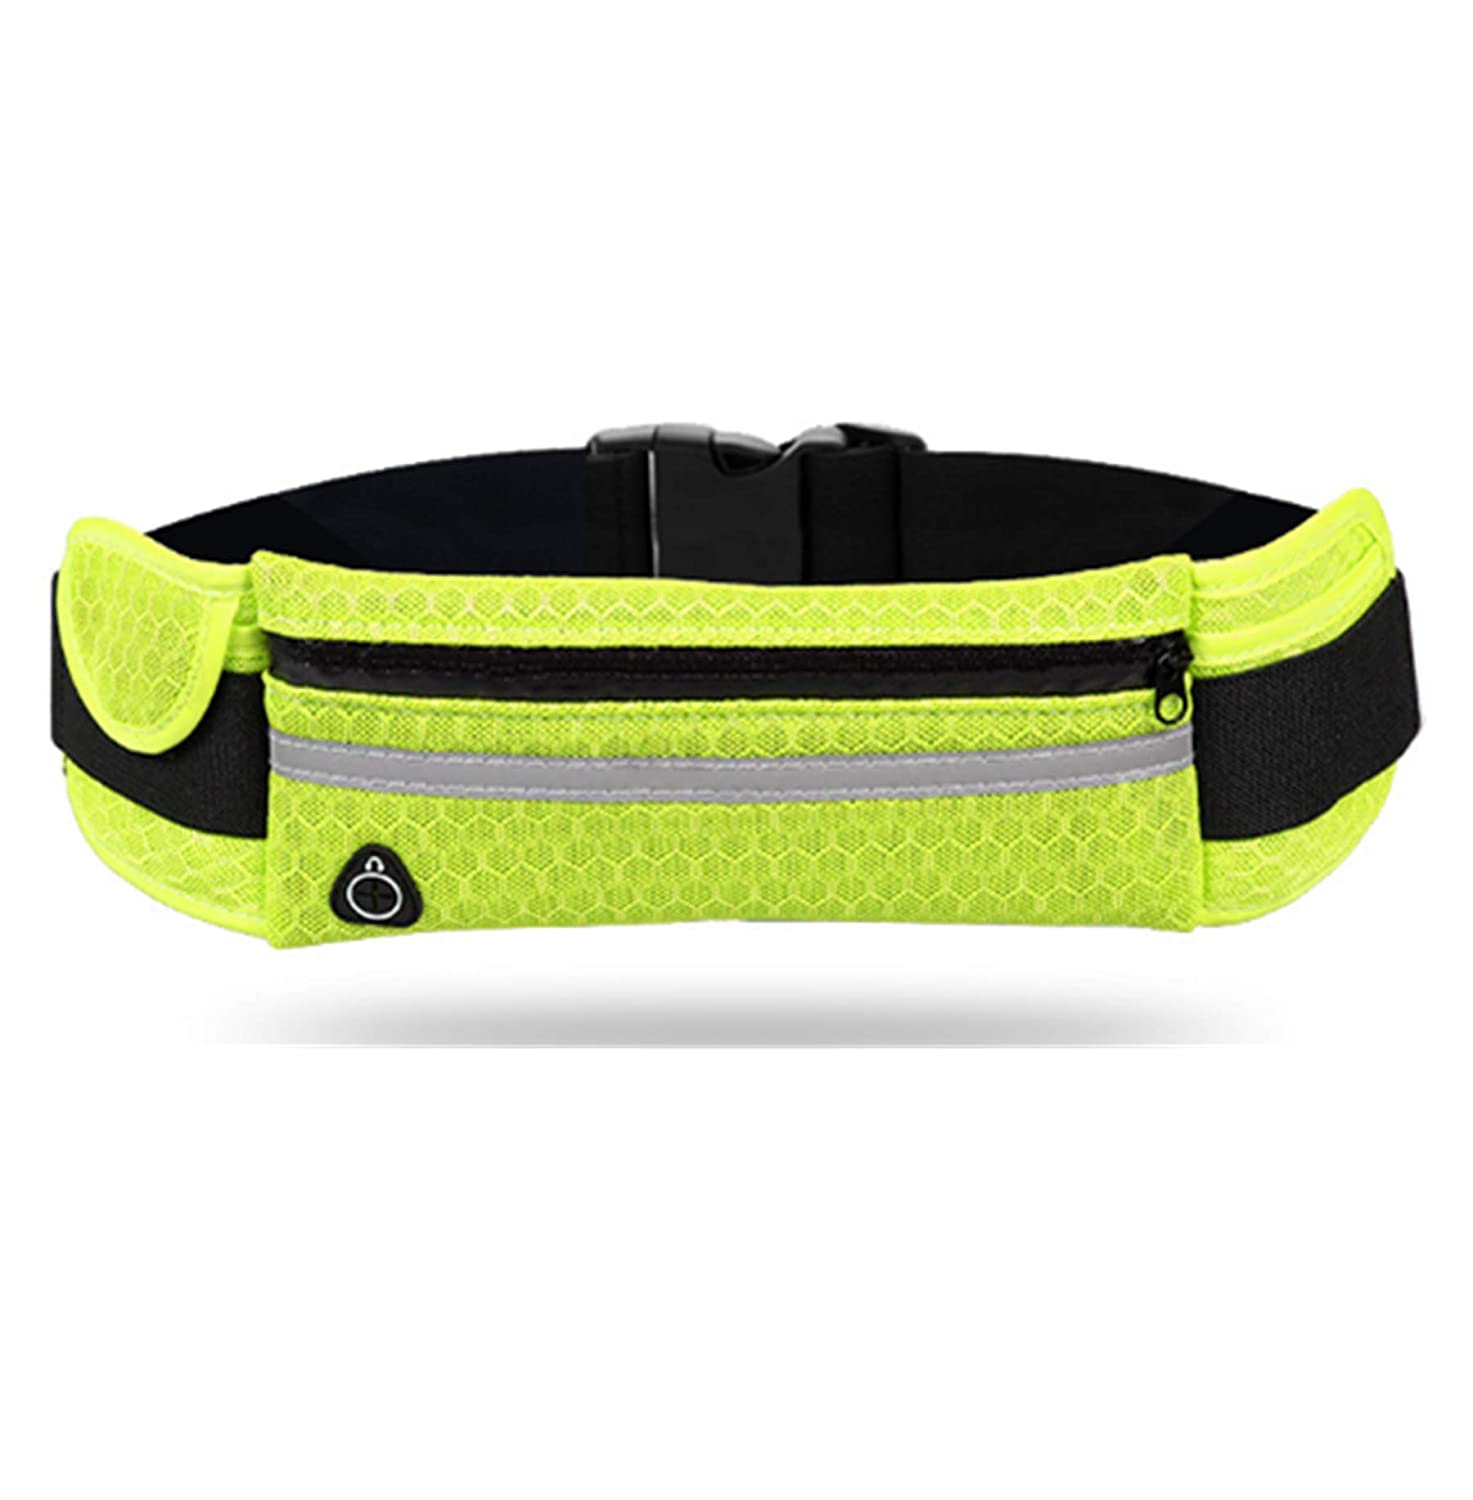 primerry Breathable Style Exercise Outdoors Large Capacity Pocket Waist Bag Blue